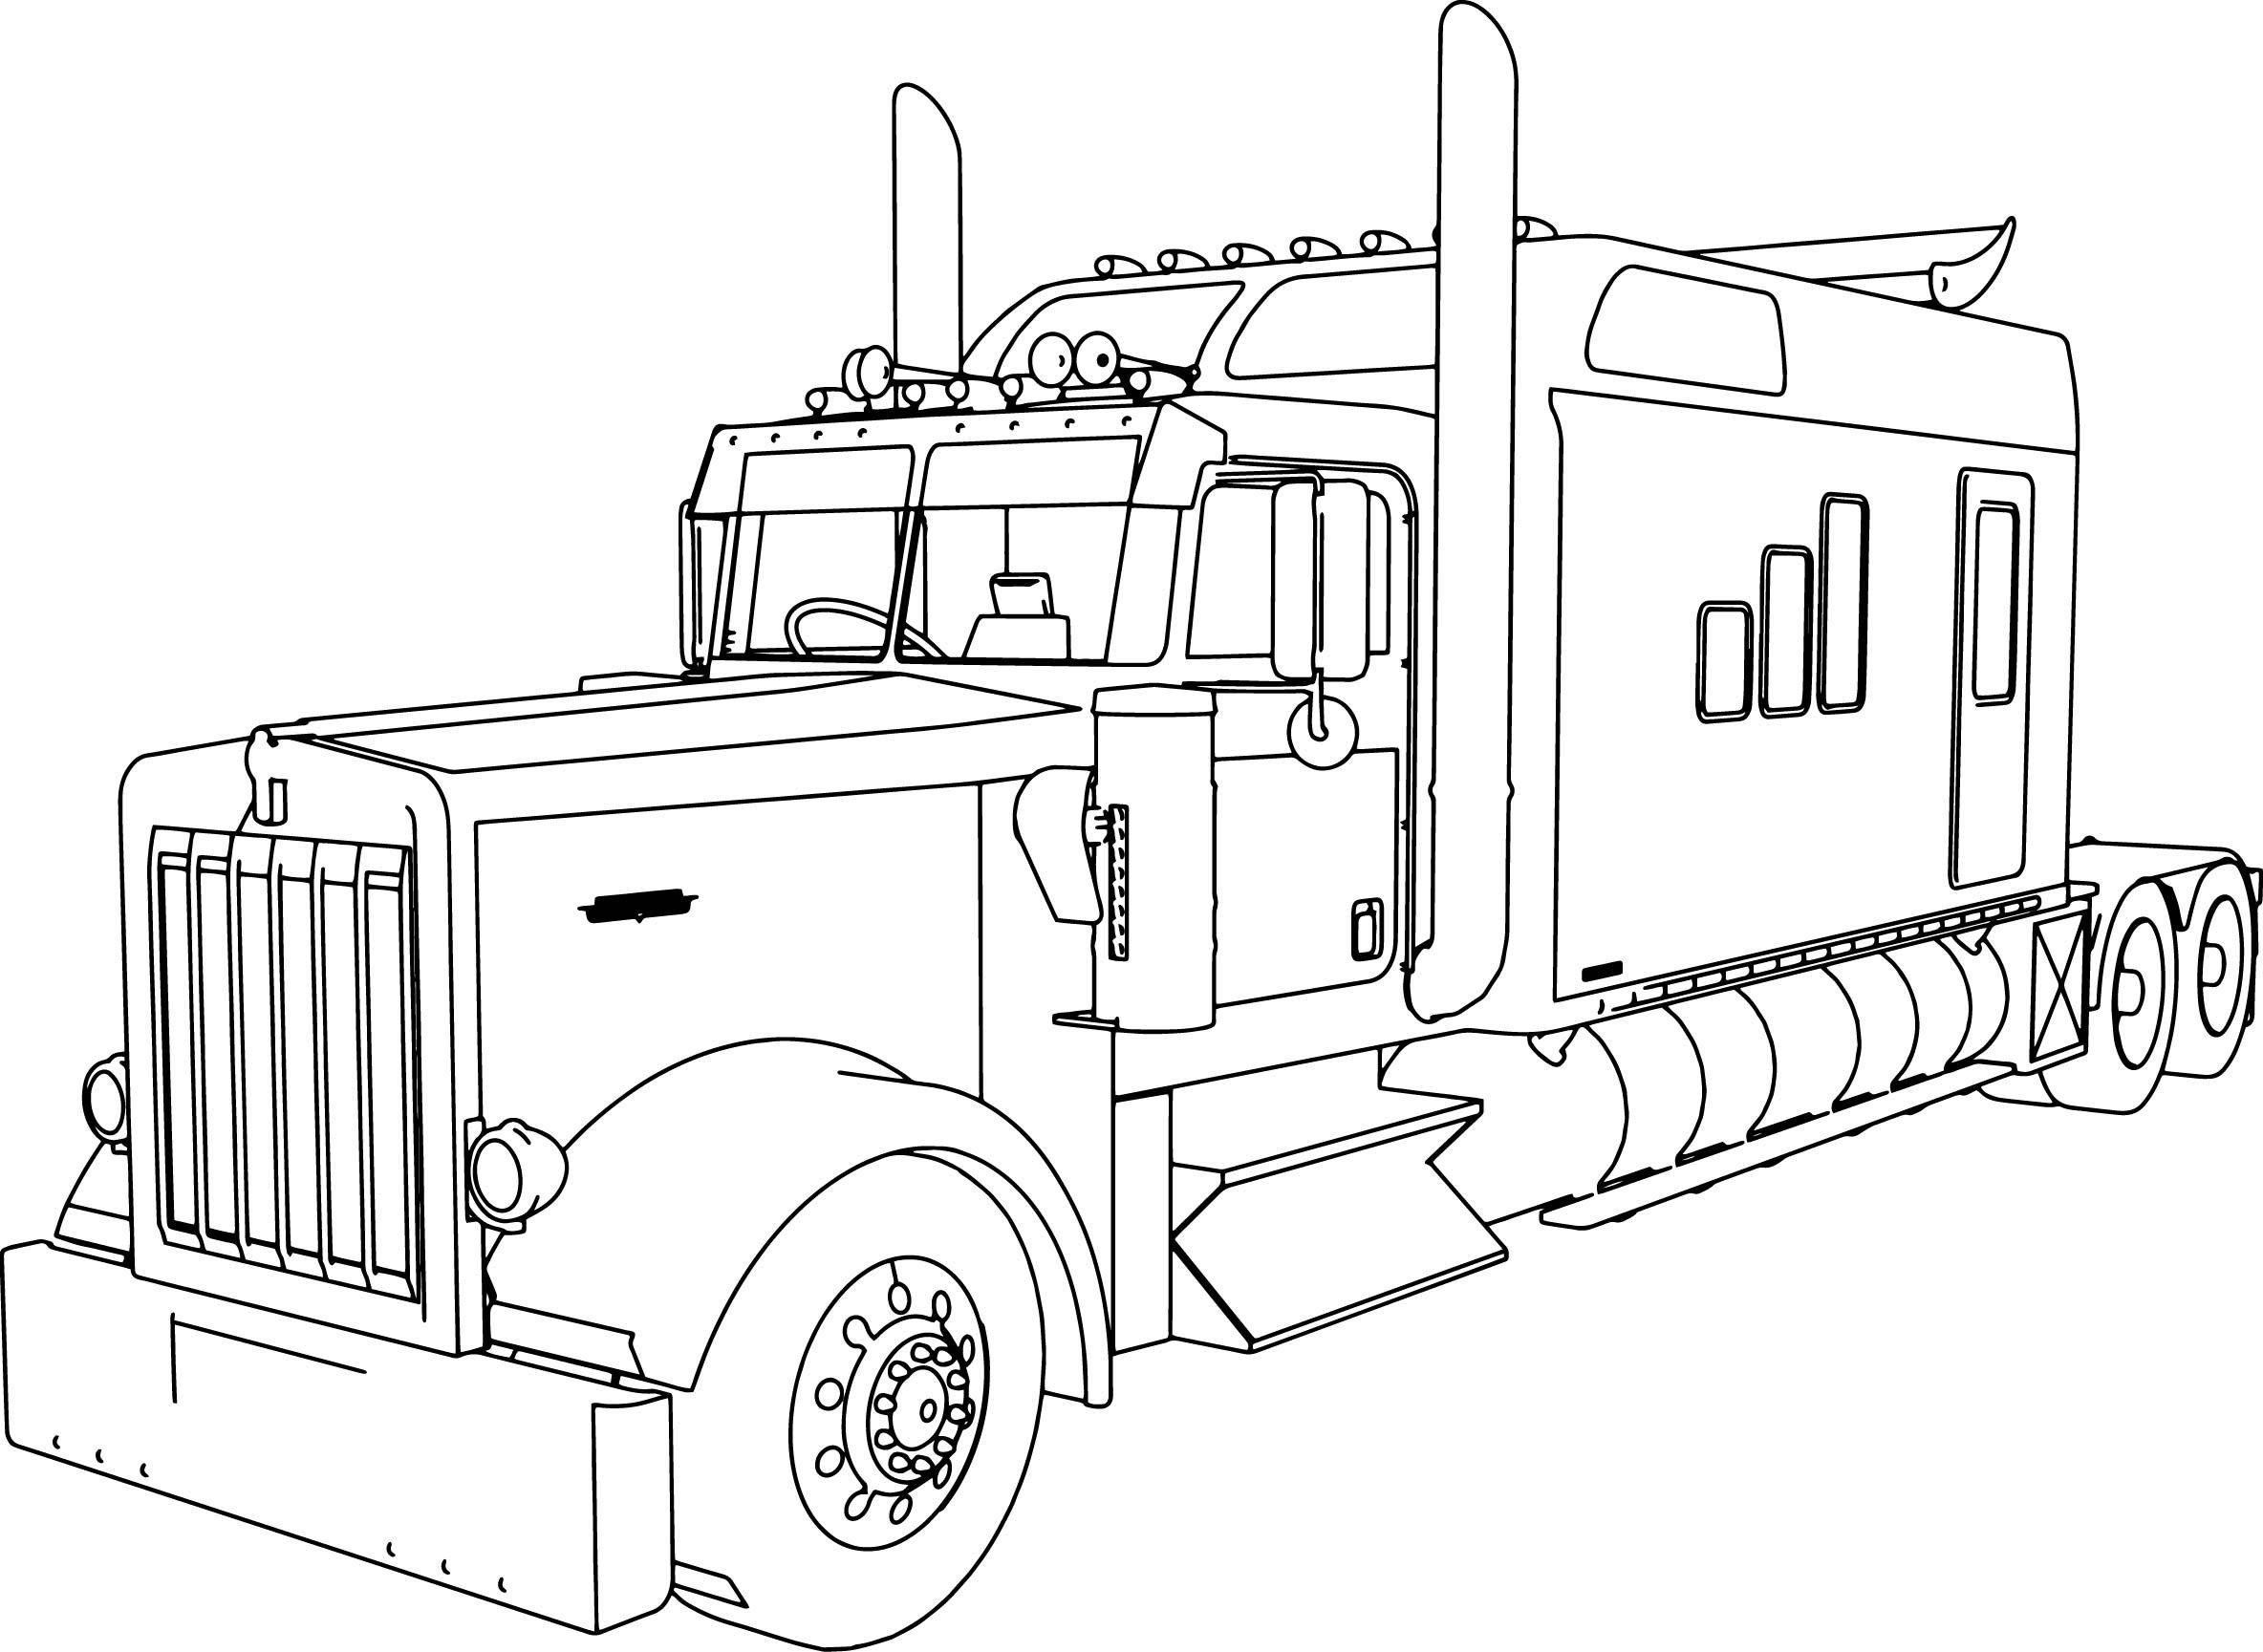 Semi Truck Coloring Pages Truck Coloring Pages Monster Truck Coloring Pages Cars Coloring In 2021 Truck Coloring Pages Monster Truck Coloring Pages Cars Coloring Pages